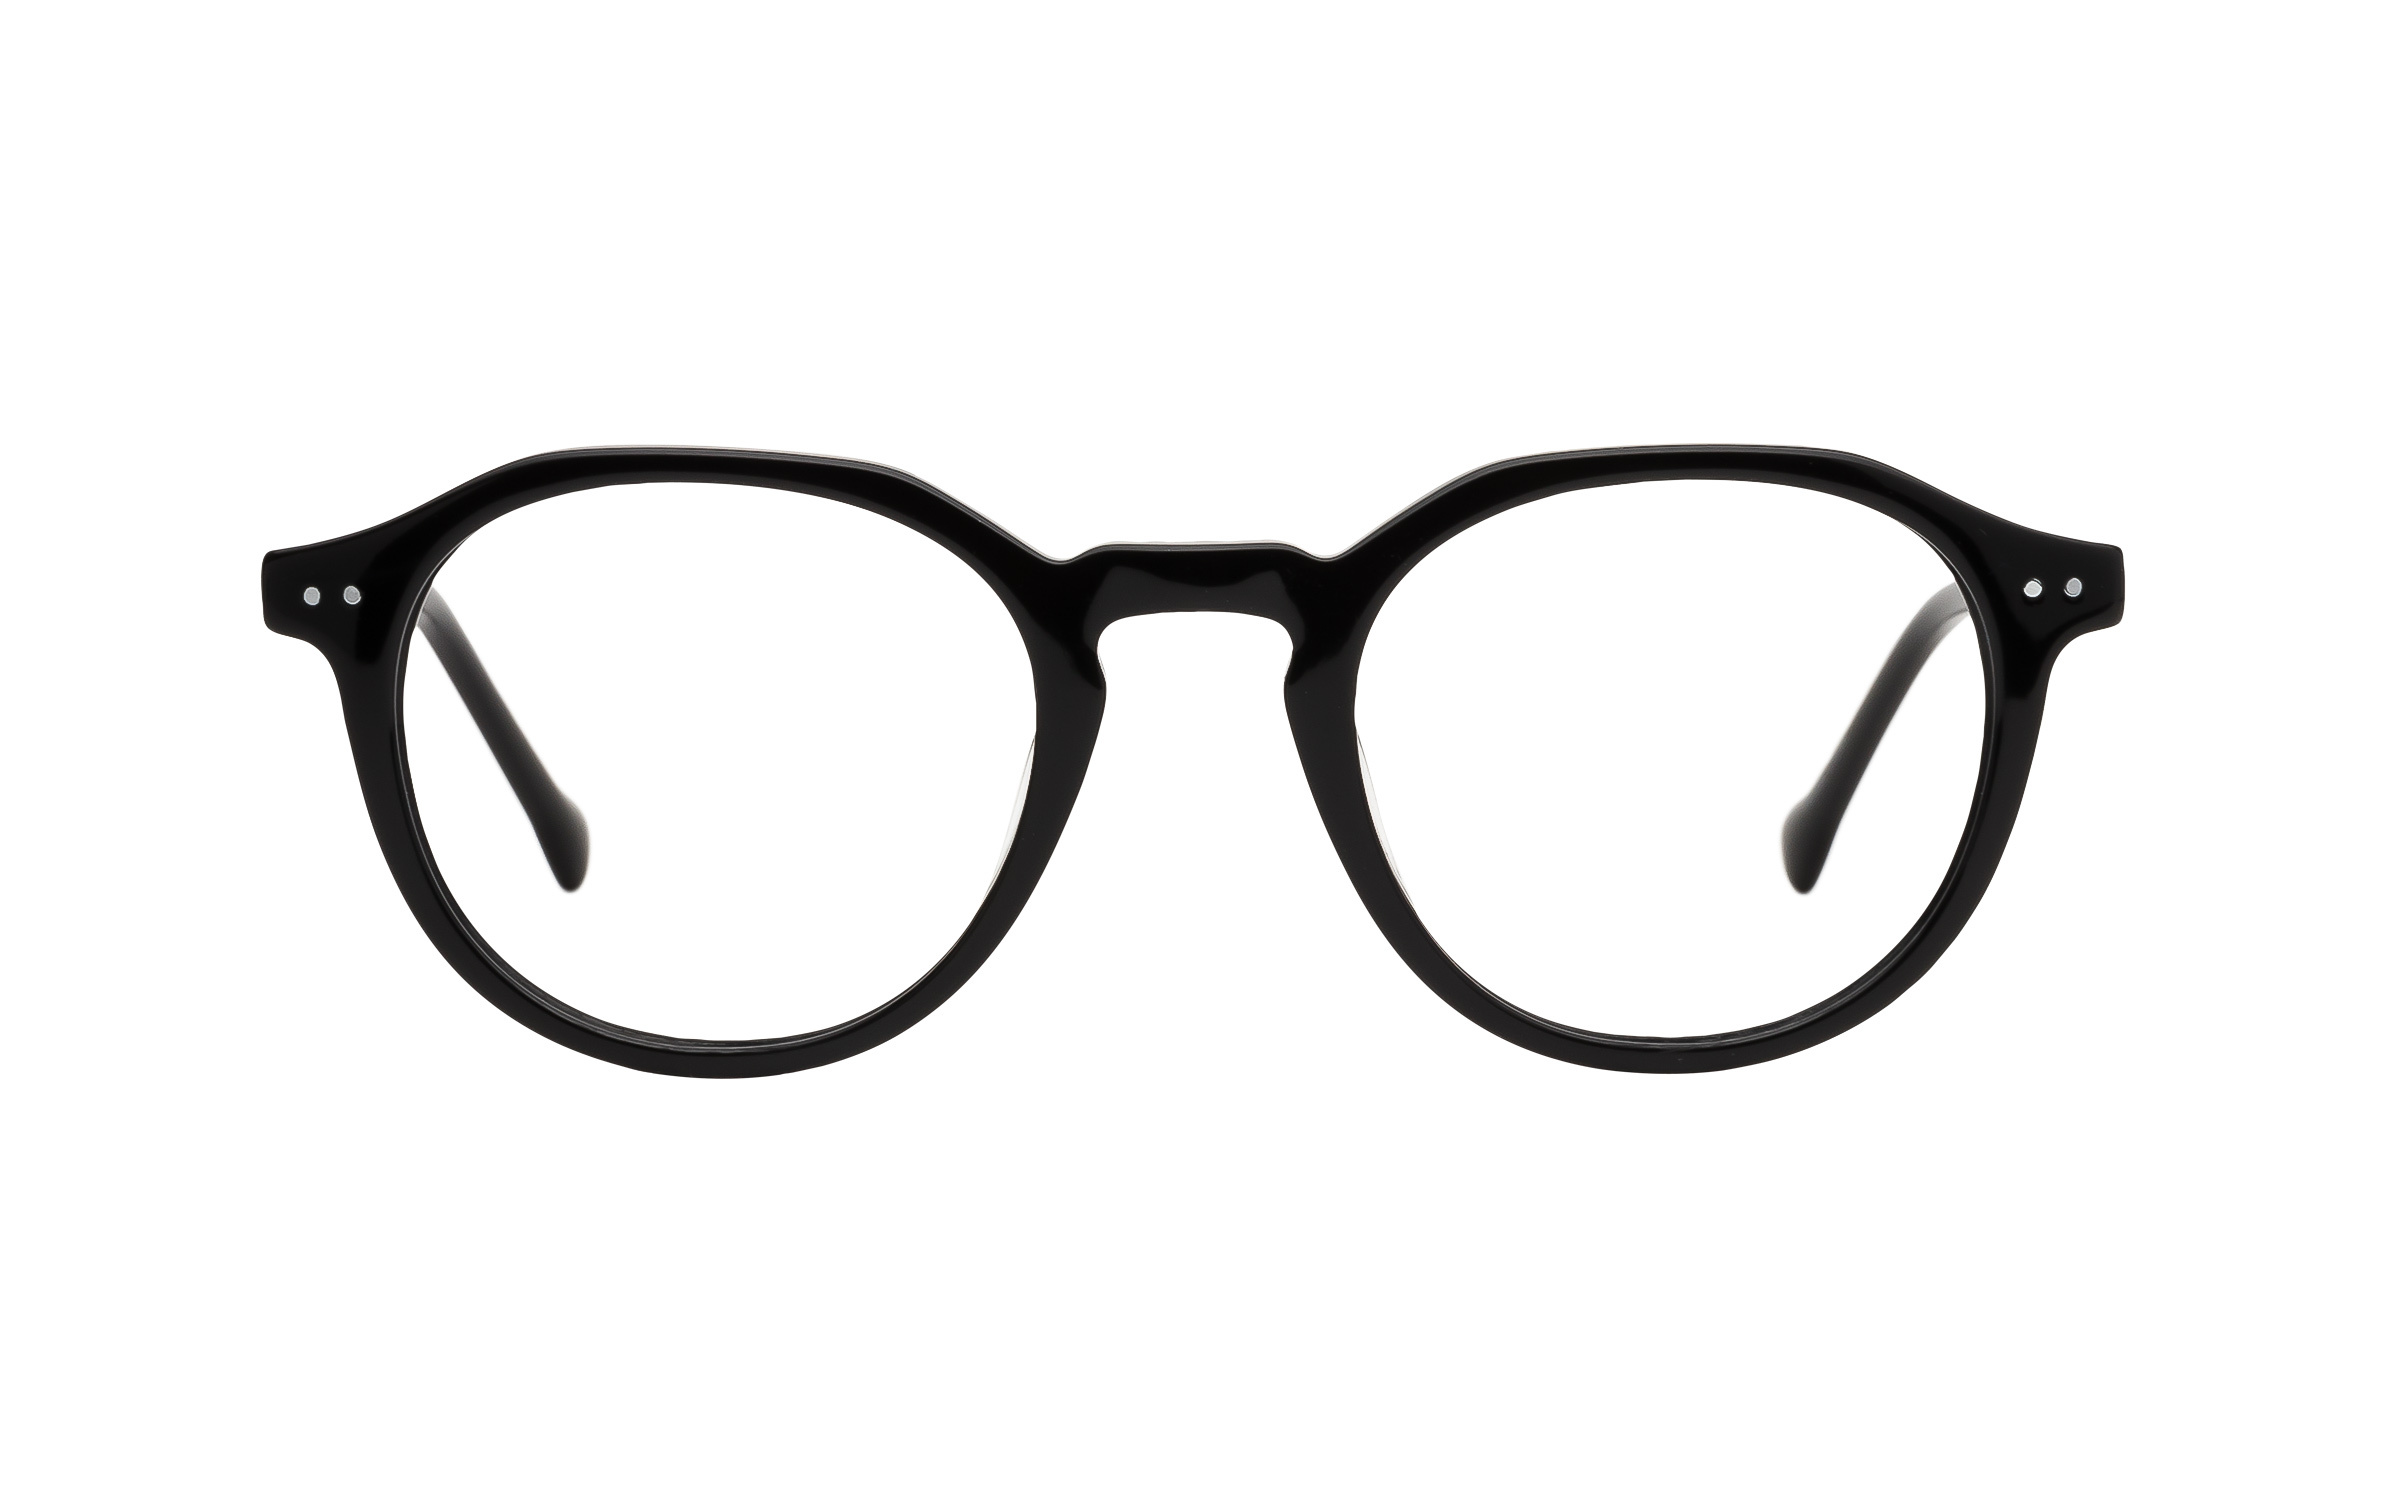 7 for All Mankind Glasses Vintage Black Online Clearly